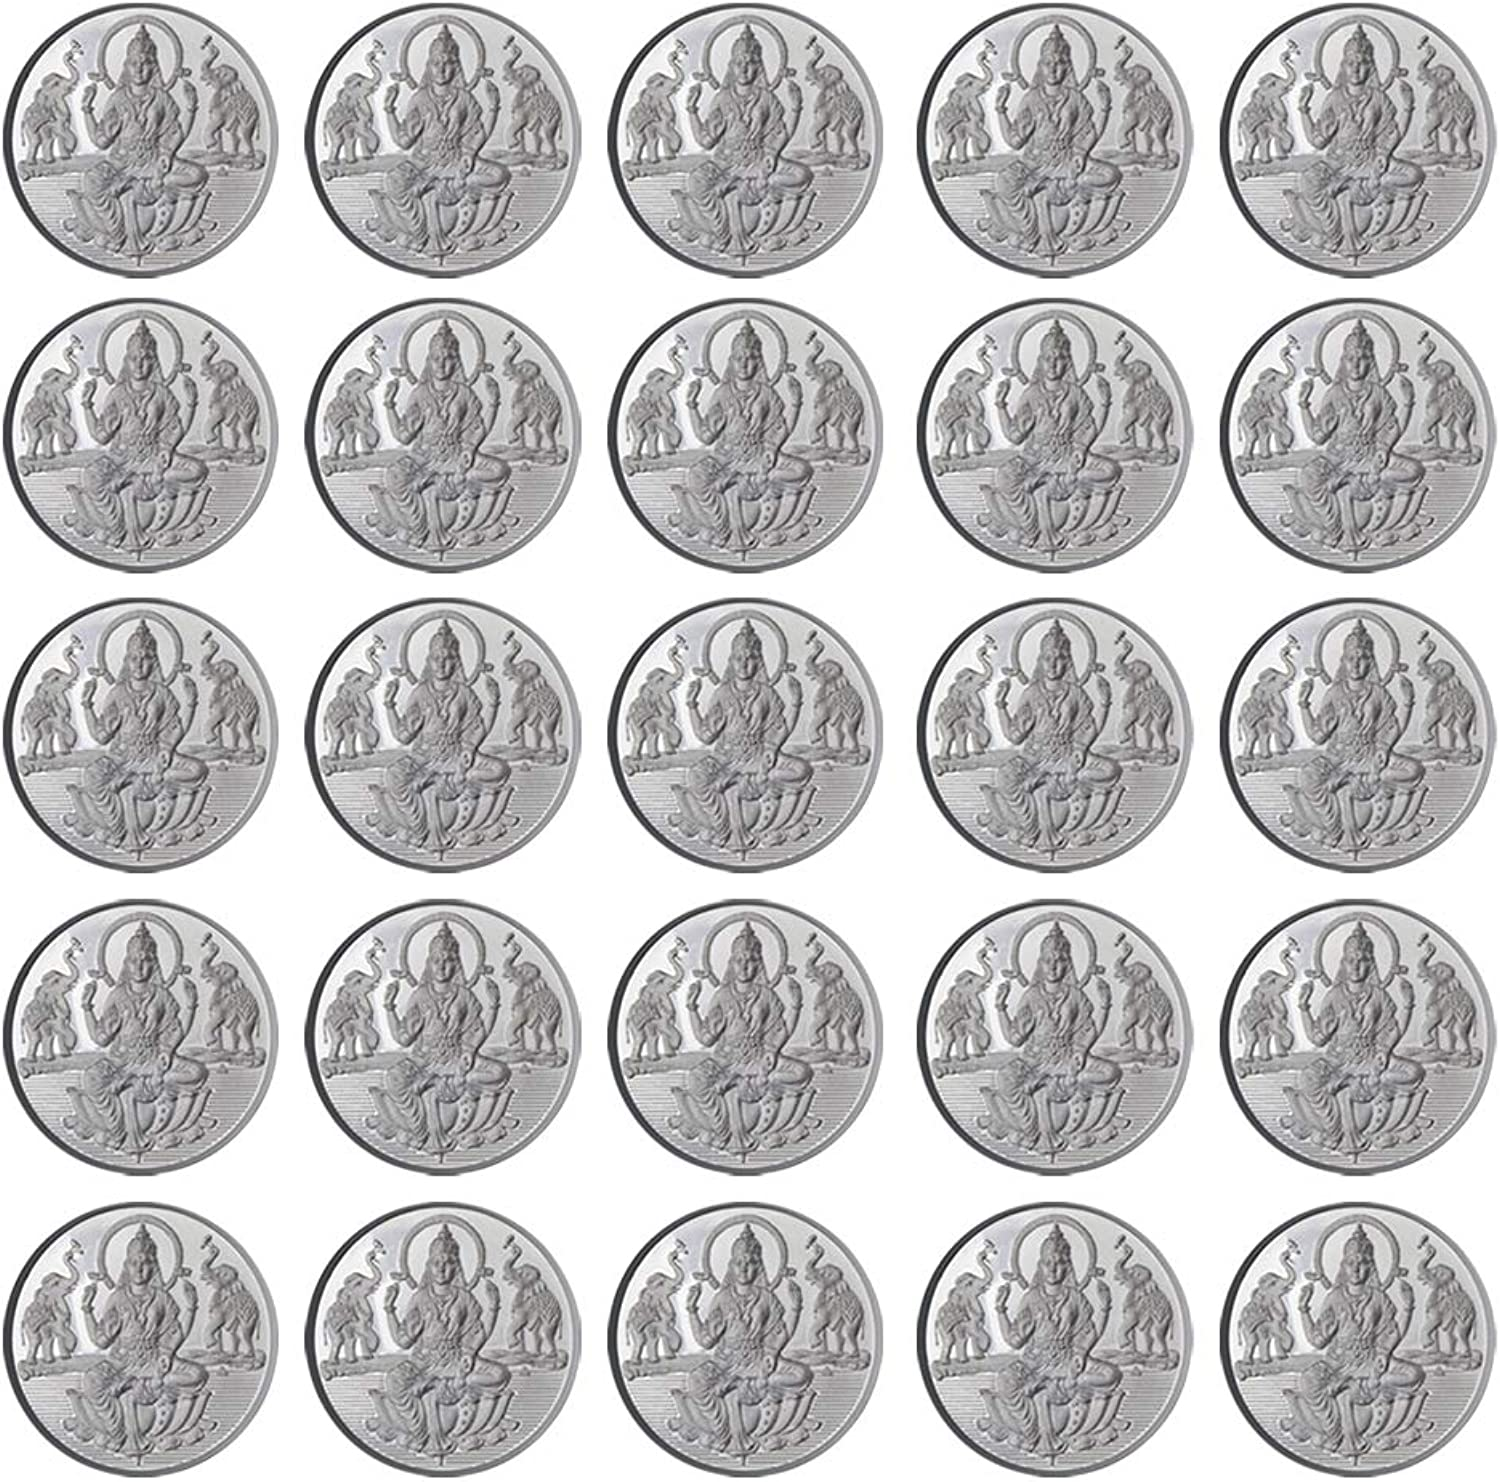 Goddess Laxmi Coin In Pure 999 Silver 5 Grams Set Of 25 Religious Coins